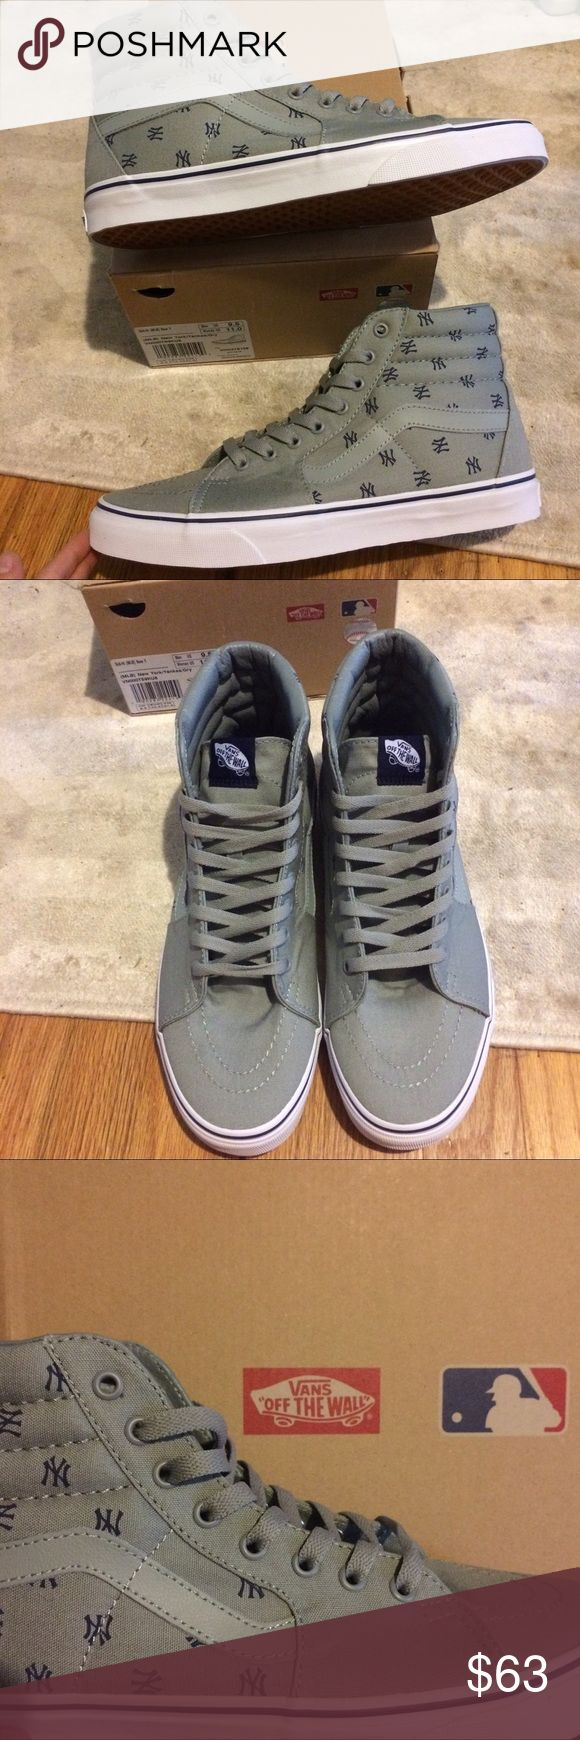 NIB MLB Vans New York Yankee Sk8-Hi top Sneakers Never worn! Great condition as pictured! Comes with the original box and two extra sets of shoe laces! **🎈💰🎈💰. *****MAKE ME AN OFFER! **please use the offer button only! Vans Shoes